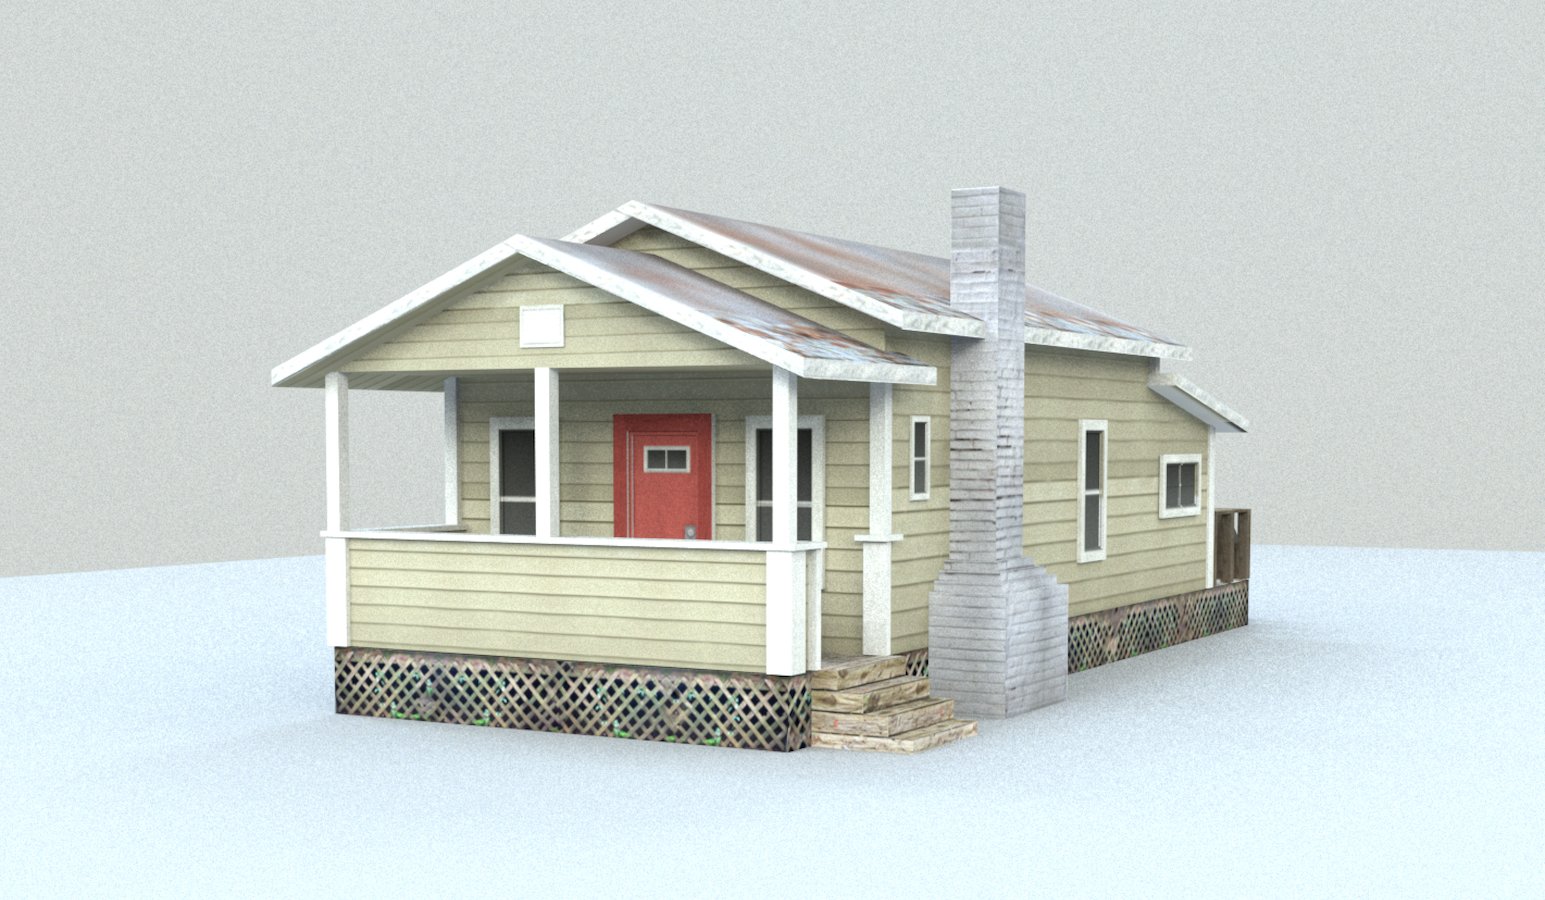 3d house made in Maya